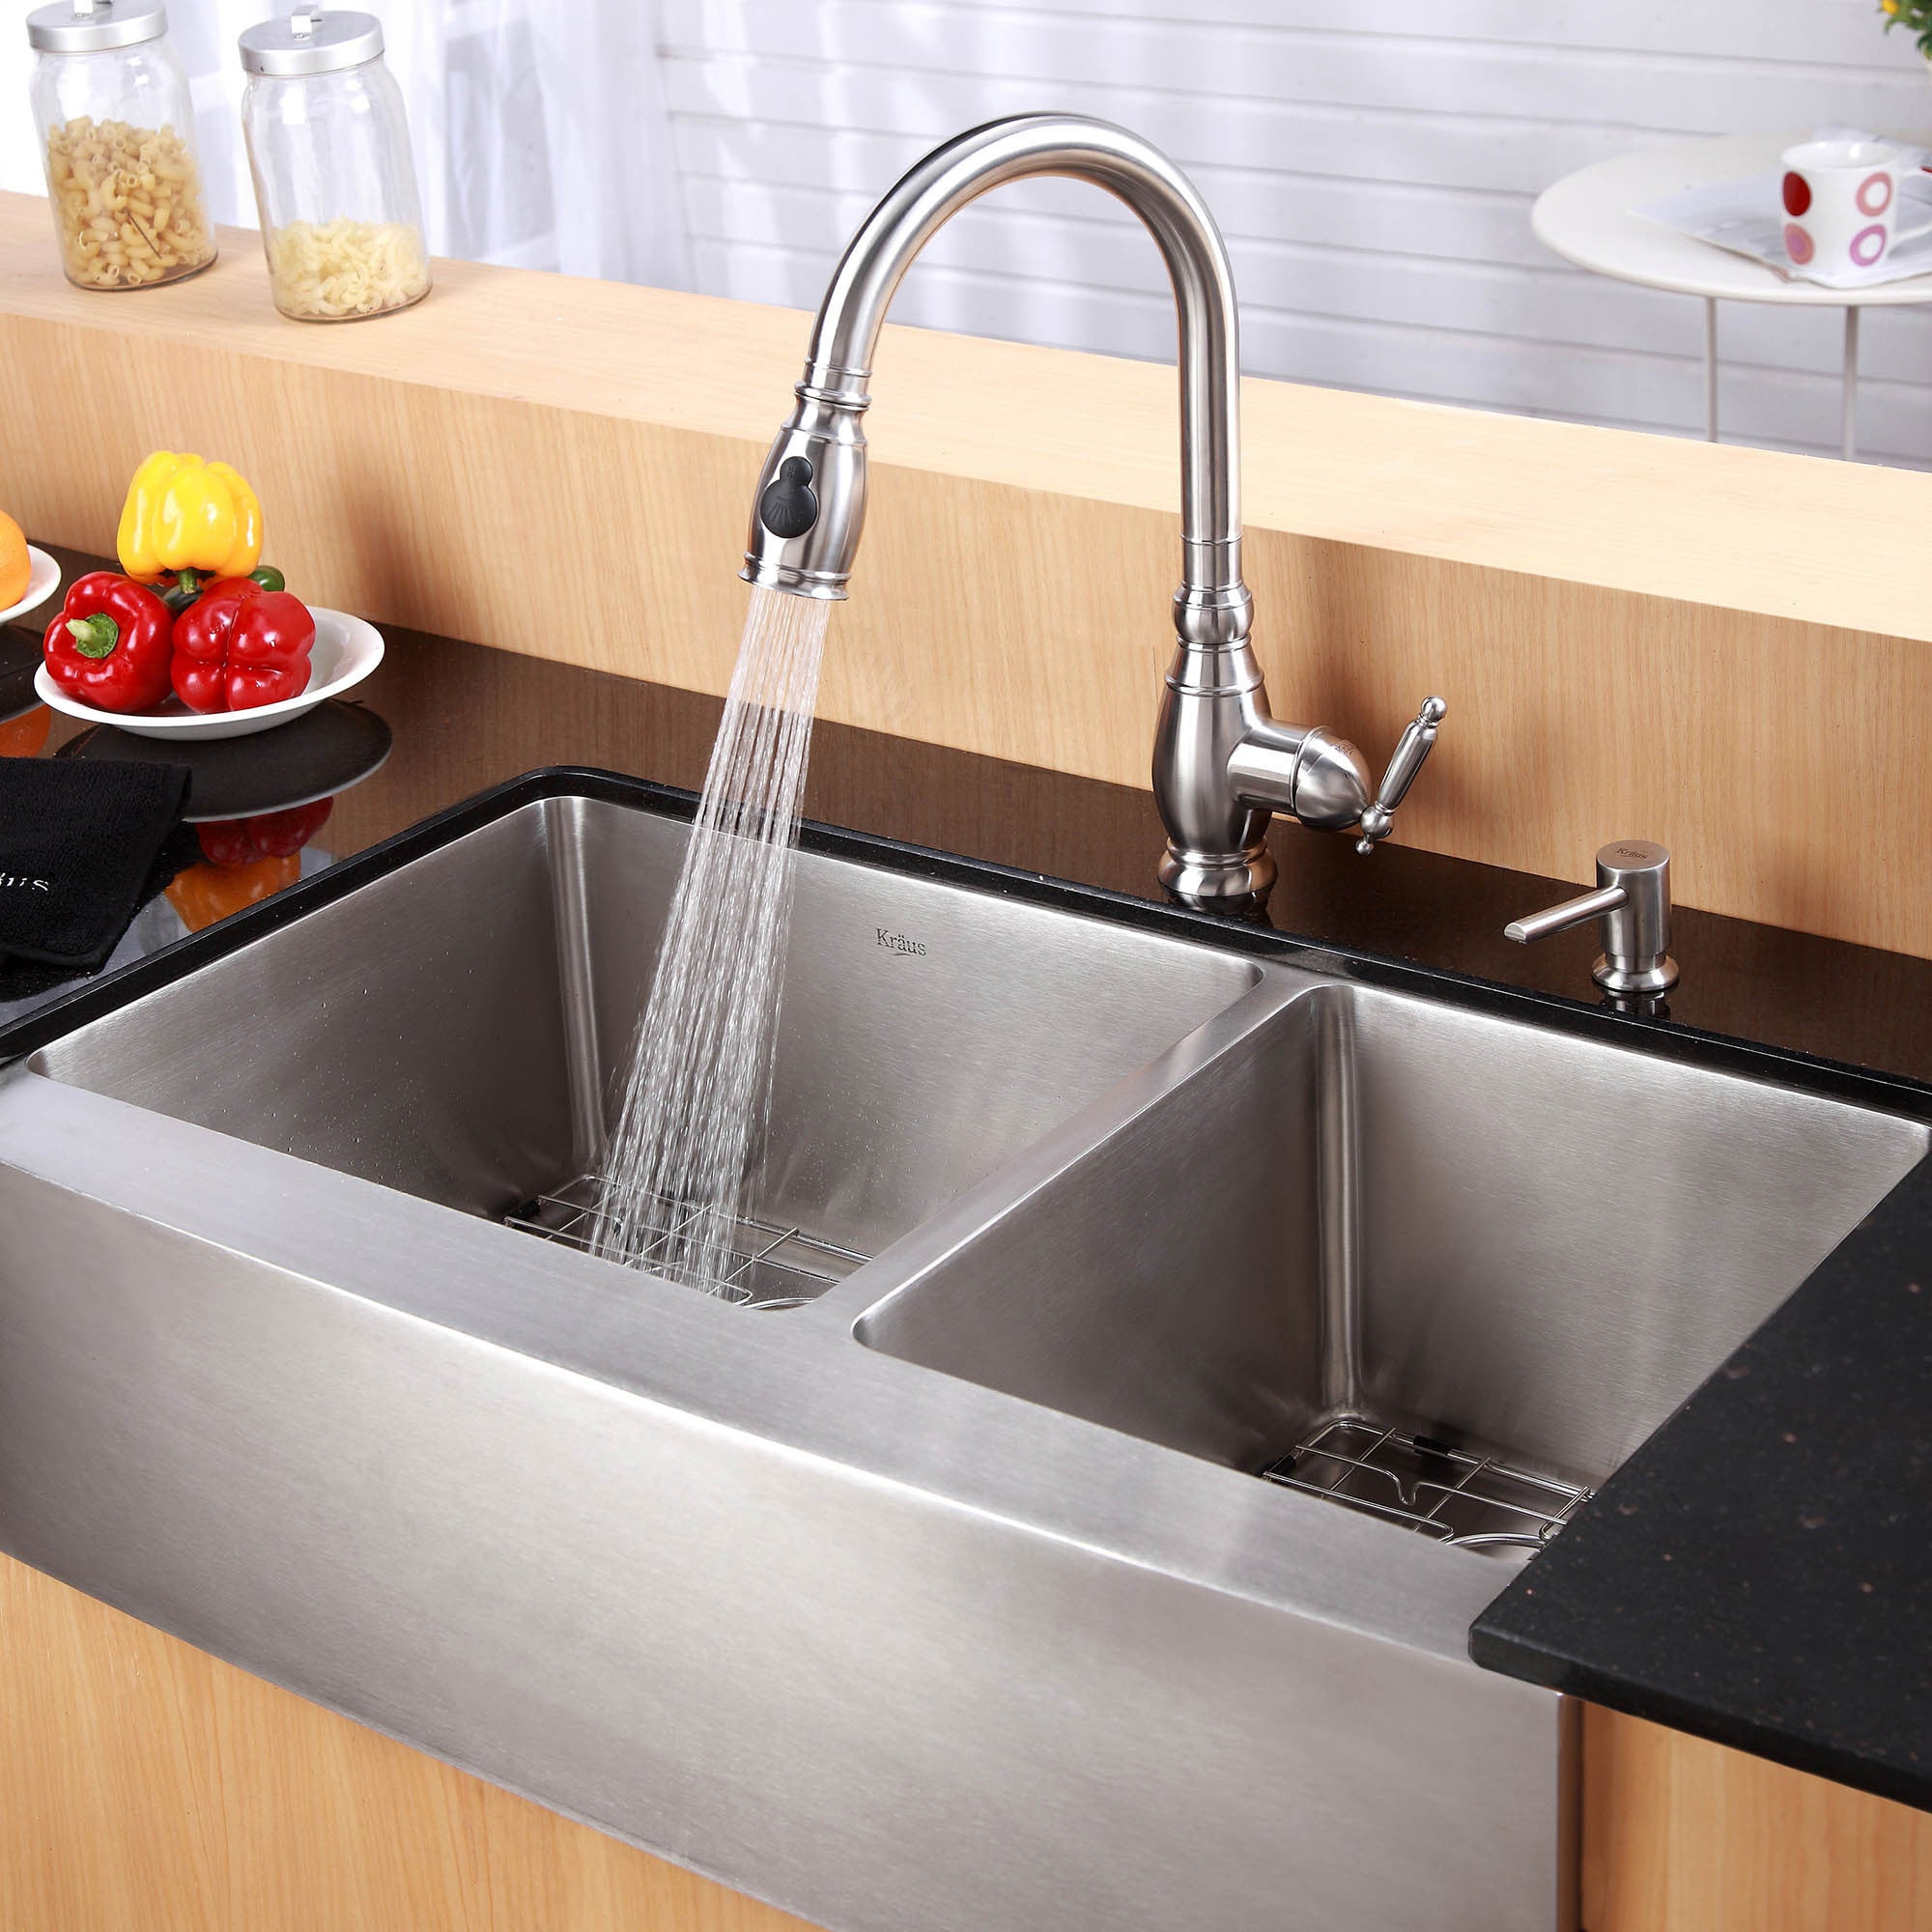 Steel Kitchen Sinks Kraus 36 inch farmhouse double bowl stainless steel kitchen sink kraus 36 inch farmhouse double bowl stainless steel kitchen sink with noisedefend soundproofing free shipping today overstock 12264210 workwithnaturefo